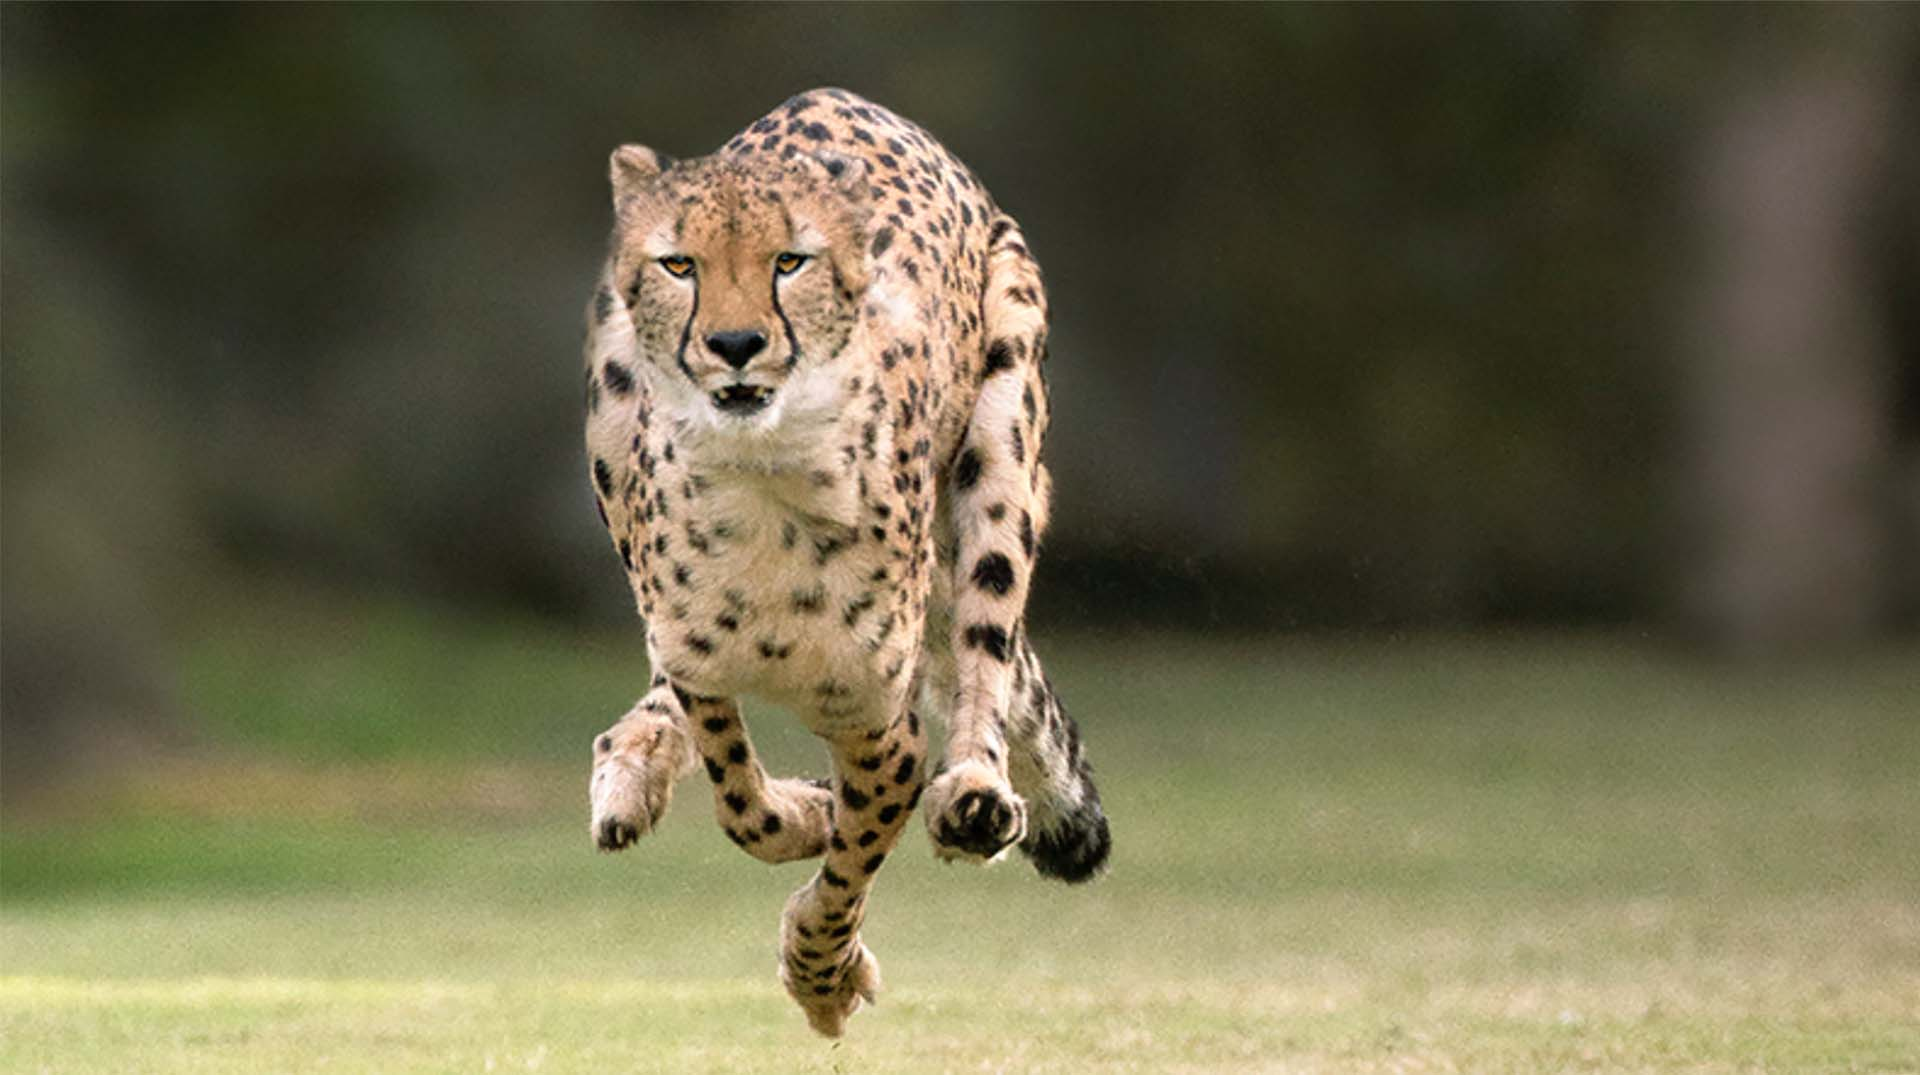 Ruuxa at the Safari Park's Cheetah Run